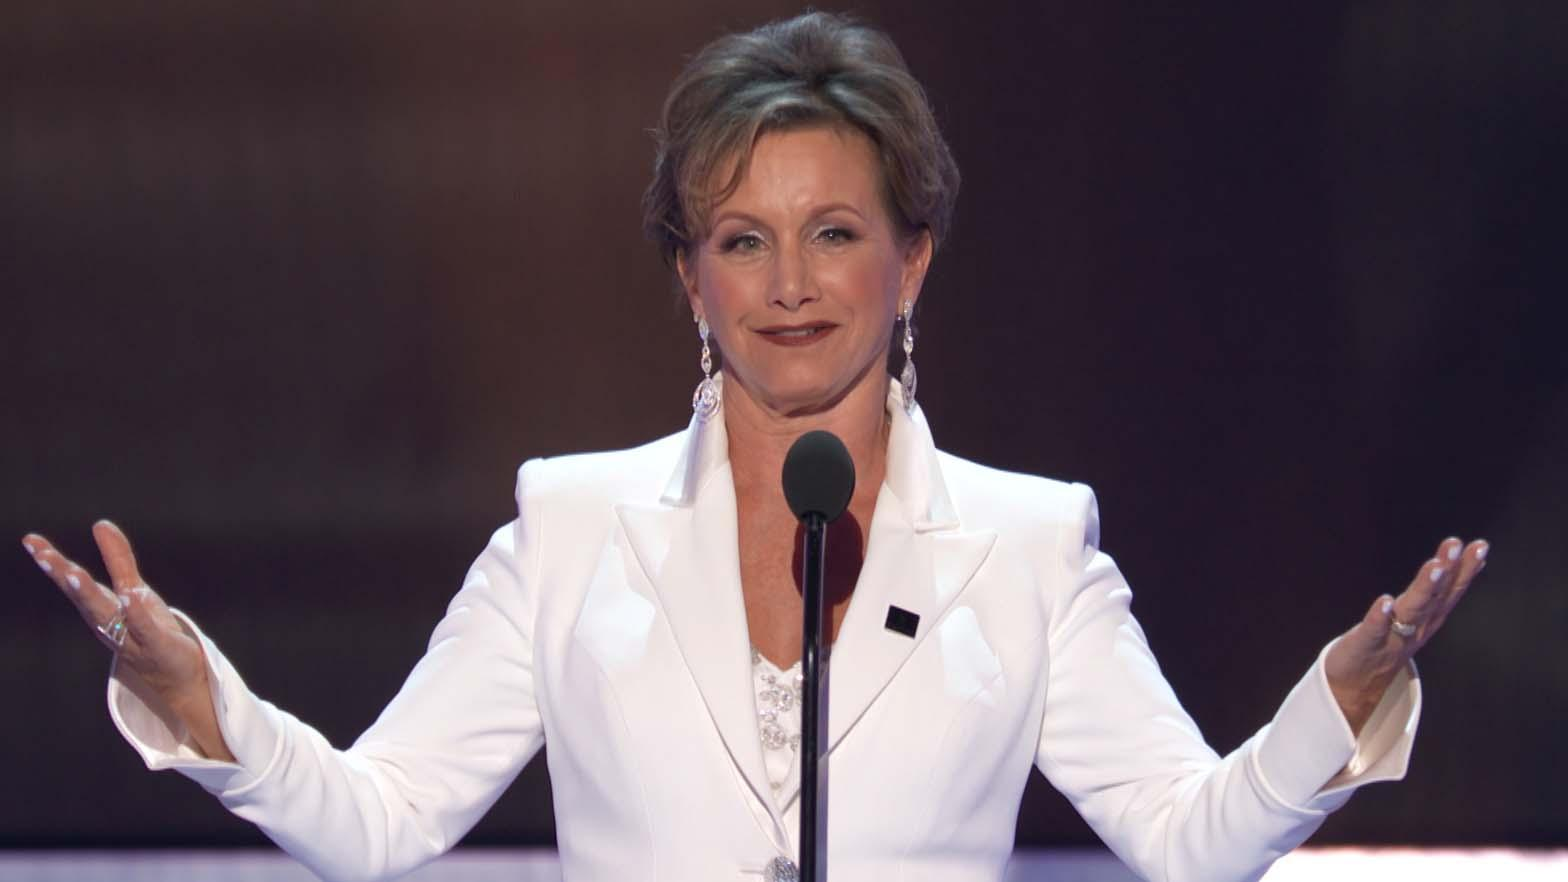 Gabrielle Carteris on stage in an all white suite